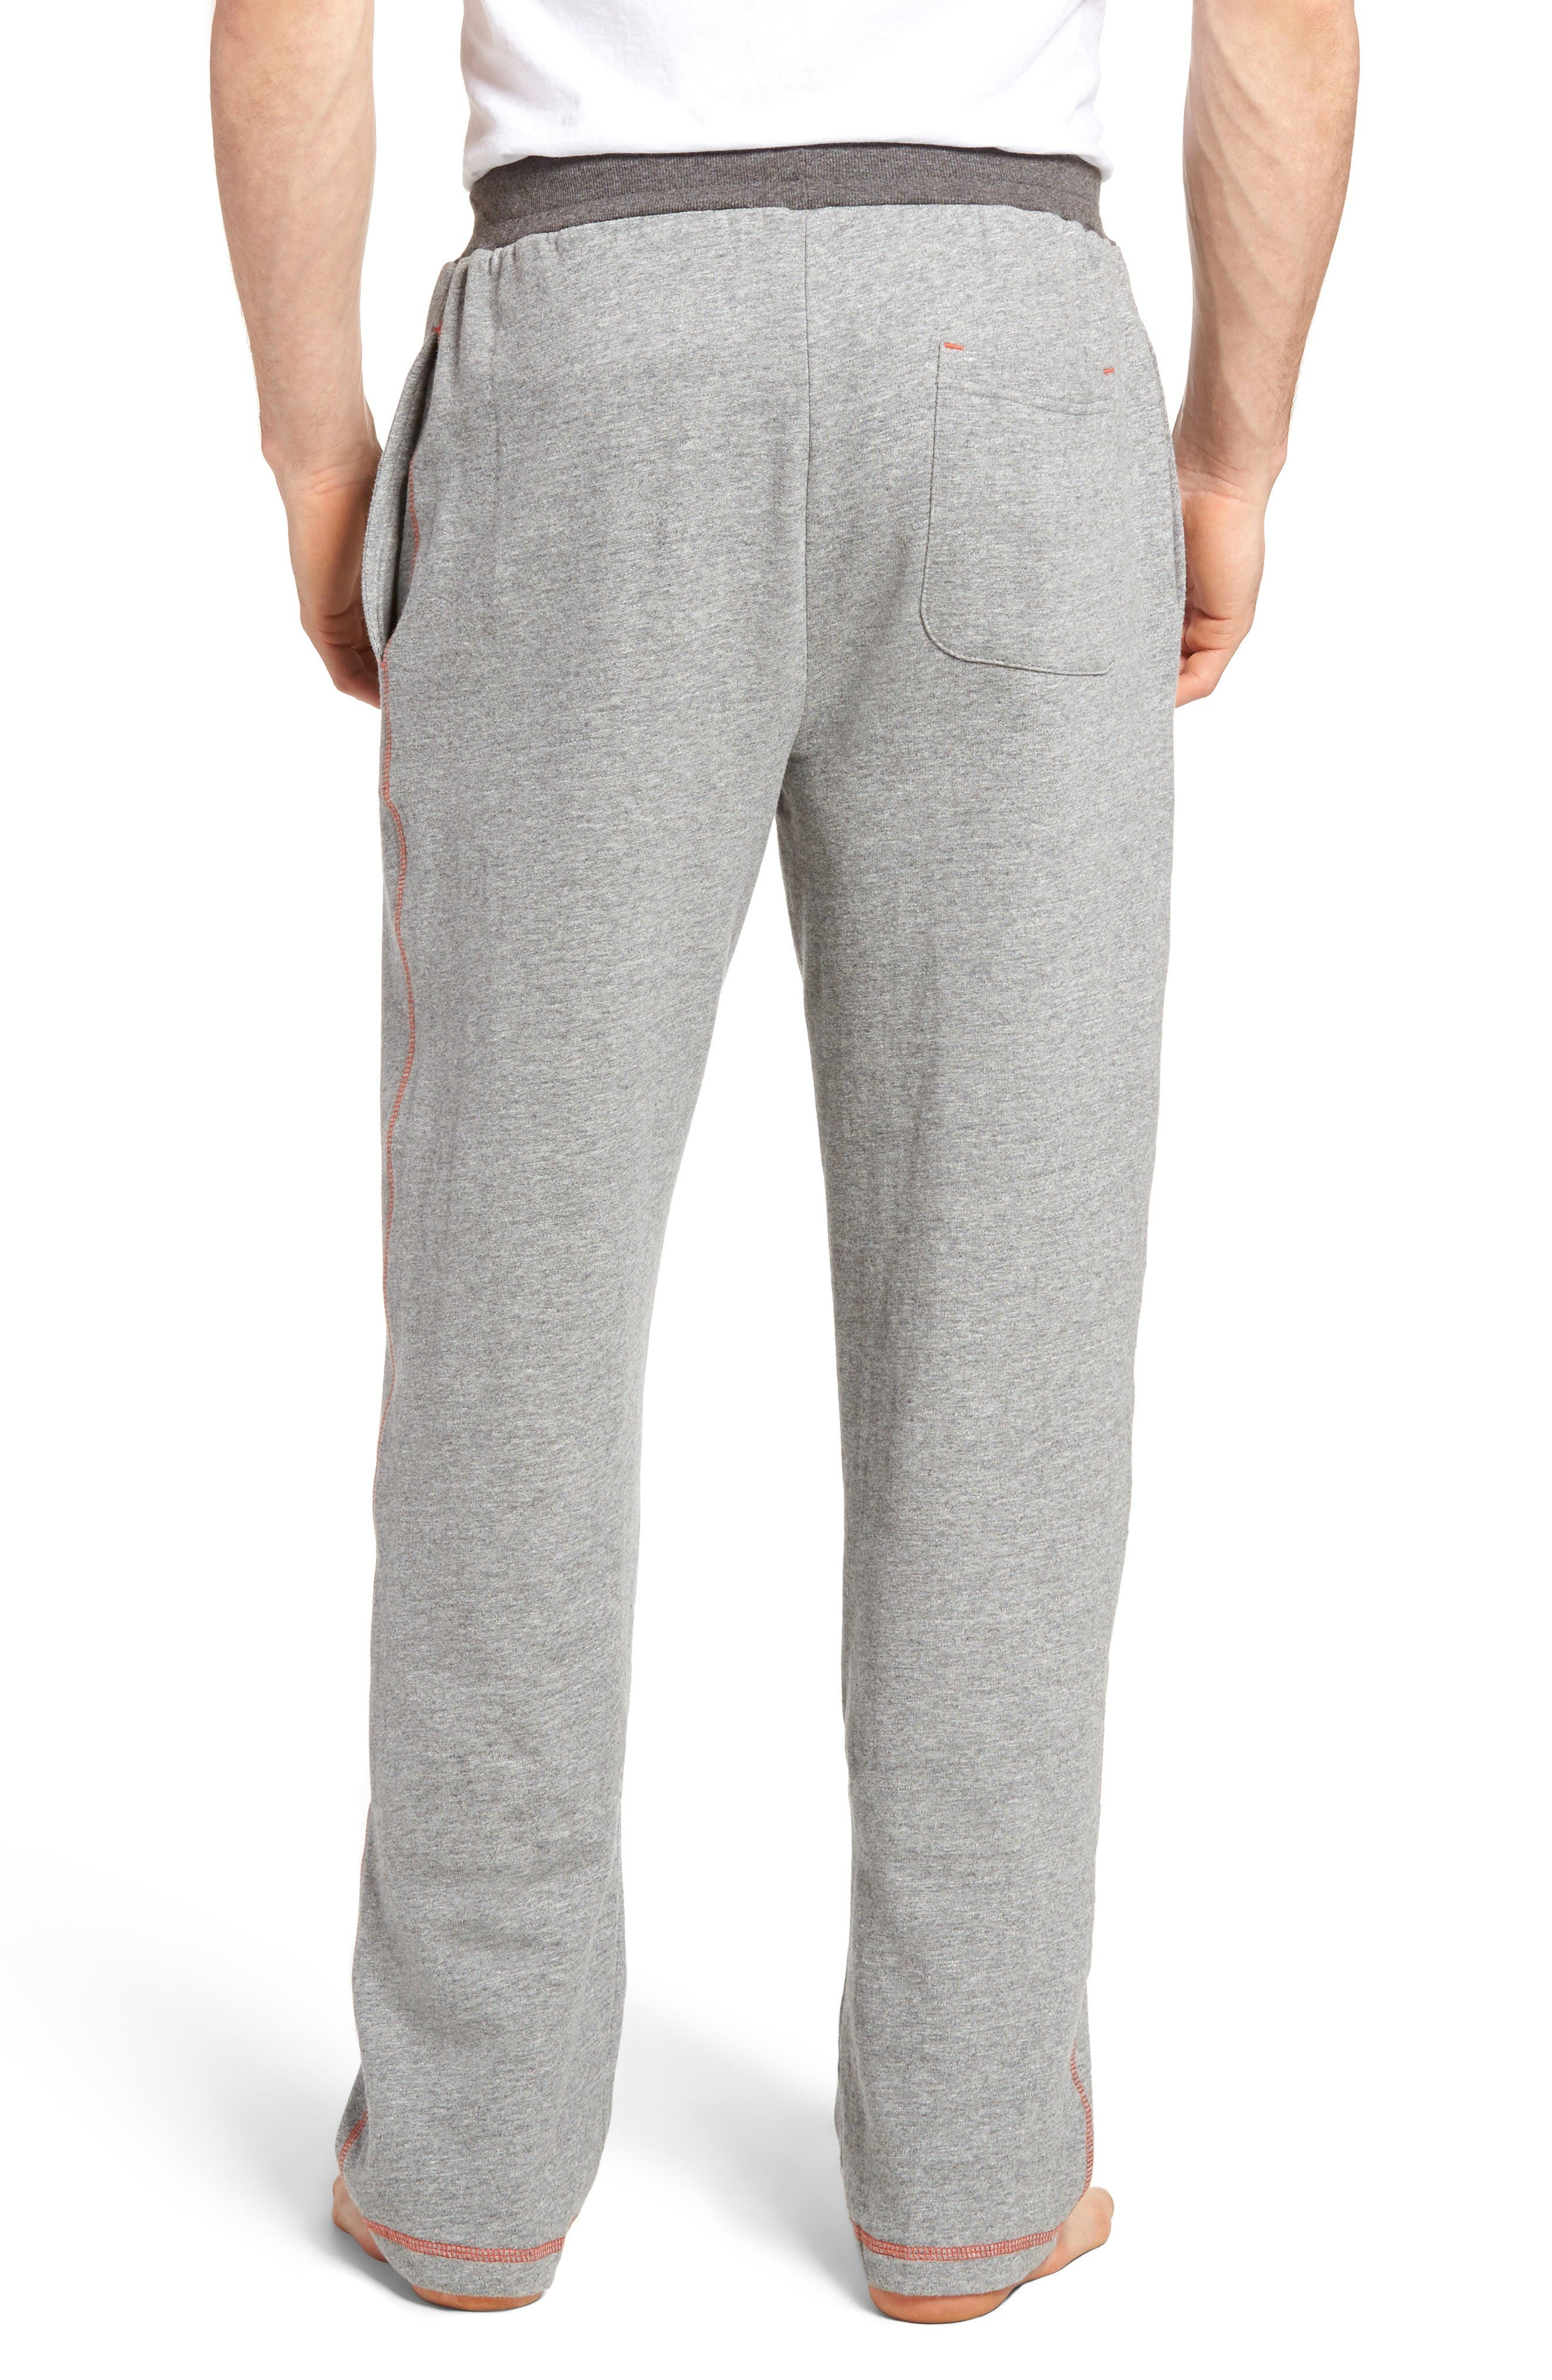 Bhooka Cotton Blend Lounge Pants,                             Alternate thumbnail 2, color,                             Charcoal Heather